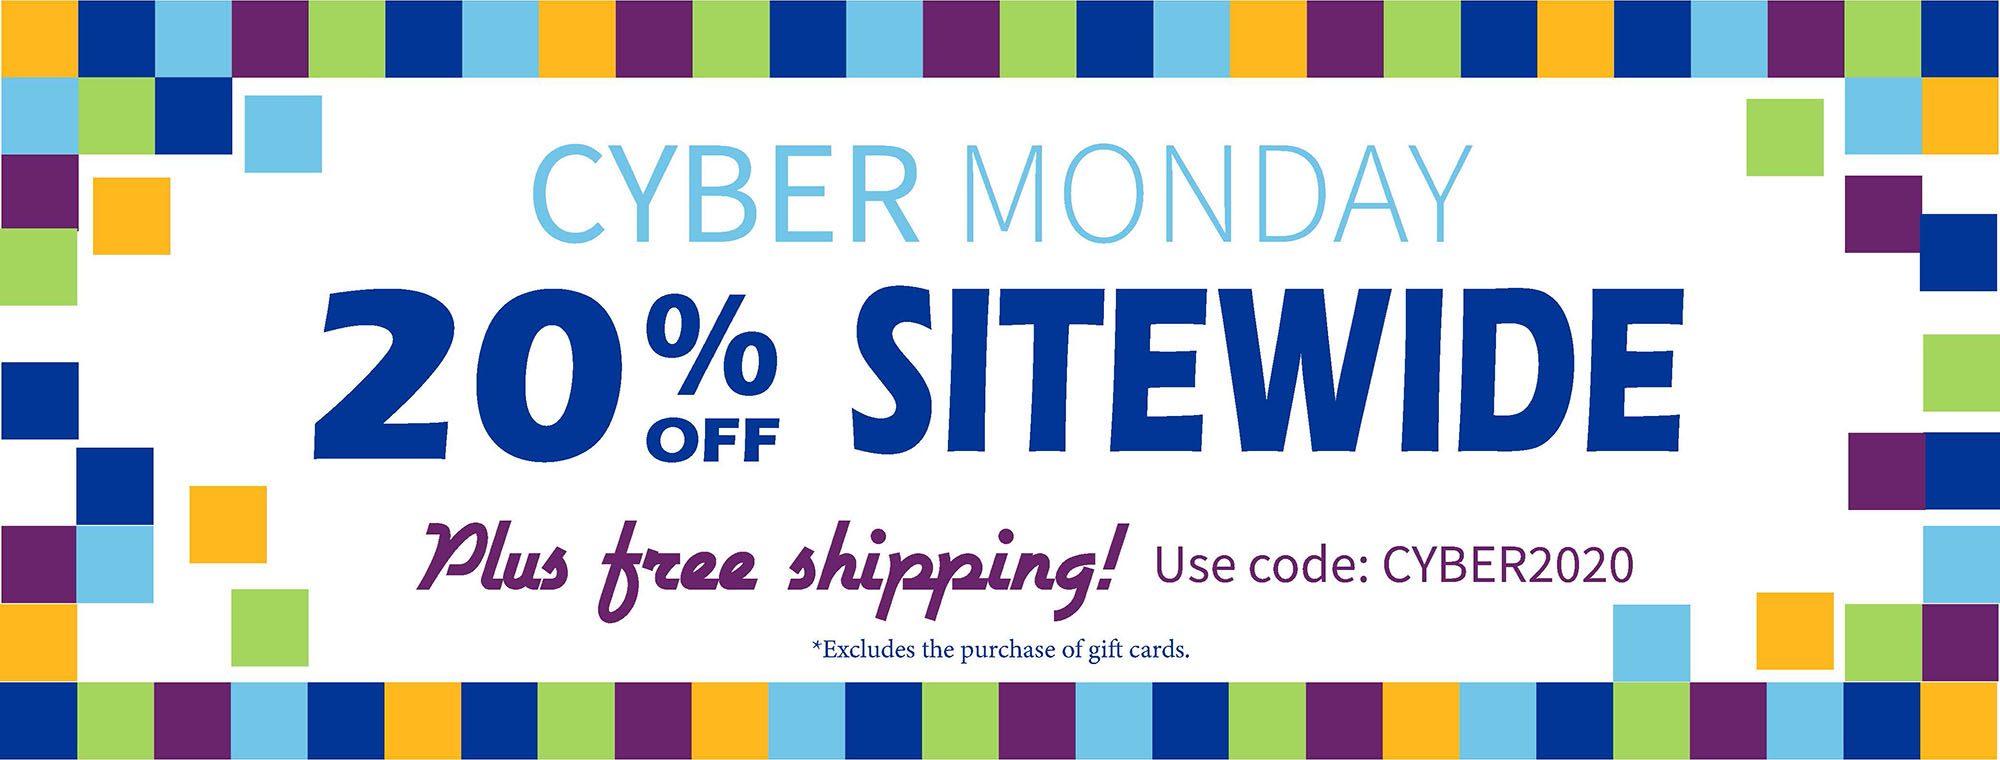 shope cyber monday on november thirtieth